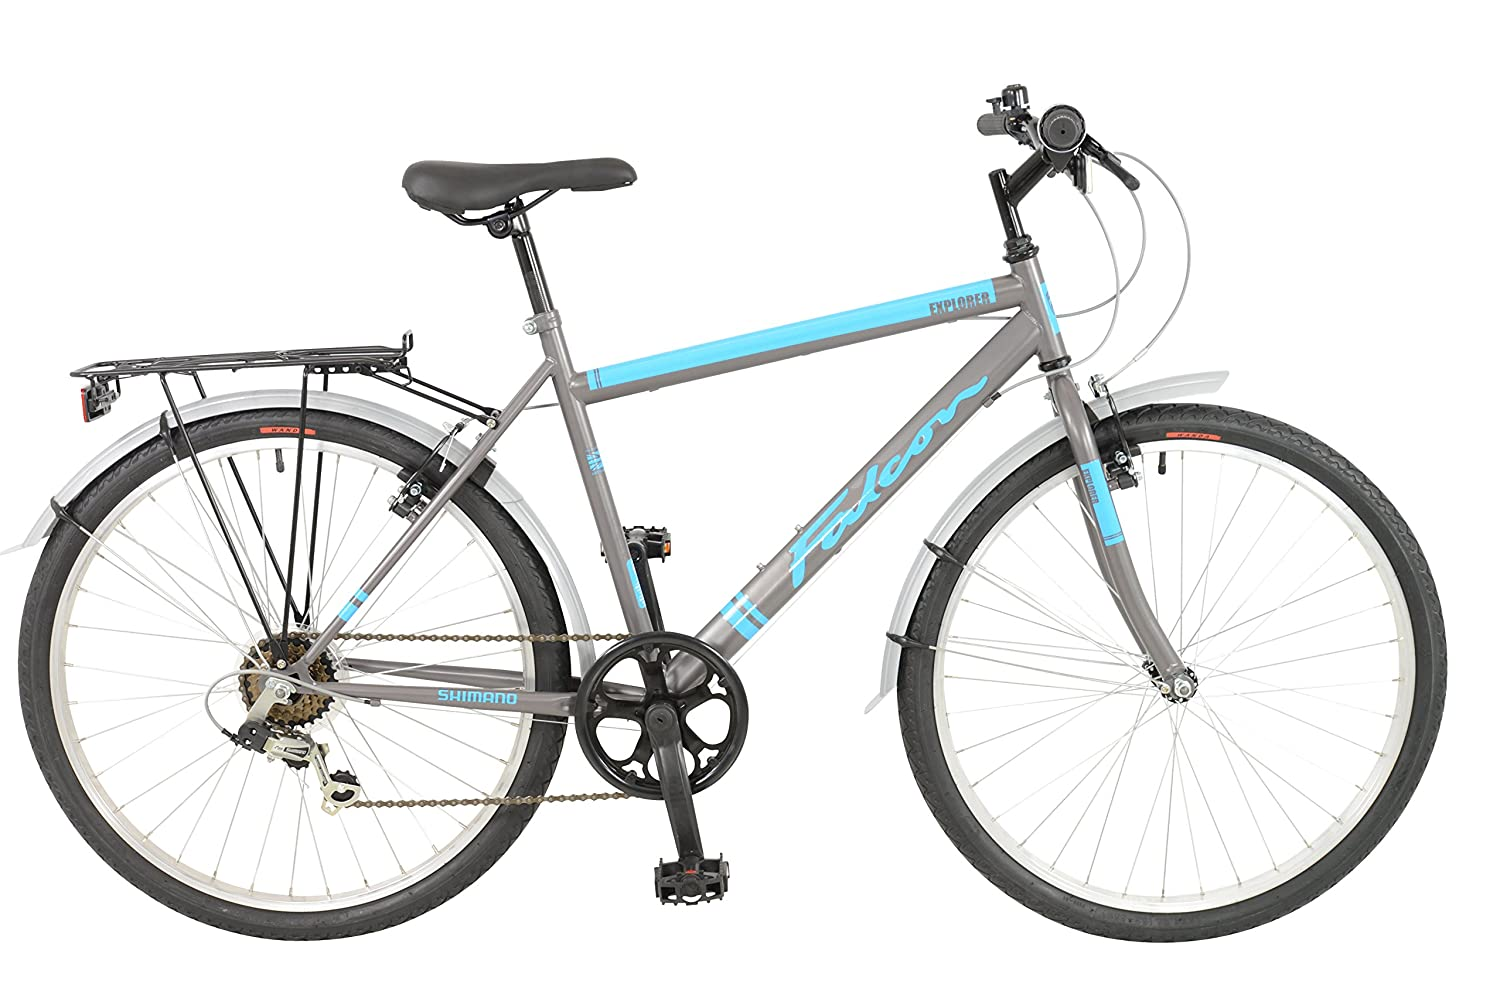 FalconExplorer Unisex Mountain Bike Black/Blue, 19 inch steel frame, 6 speed strong and lightweight alloy wheel rims front and rear v-brakes 19 inch steel frame